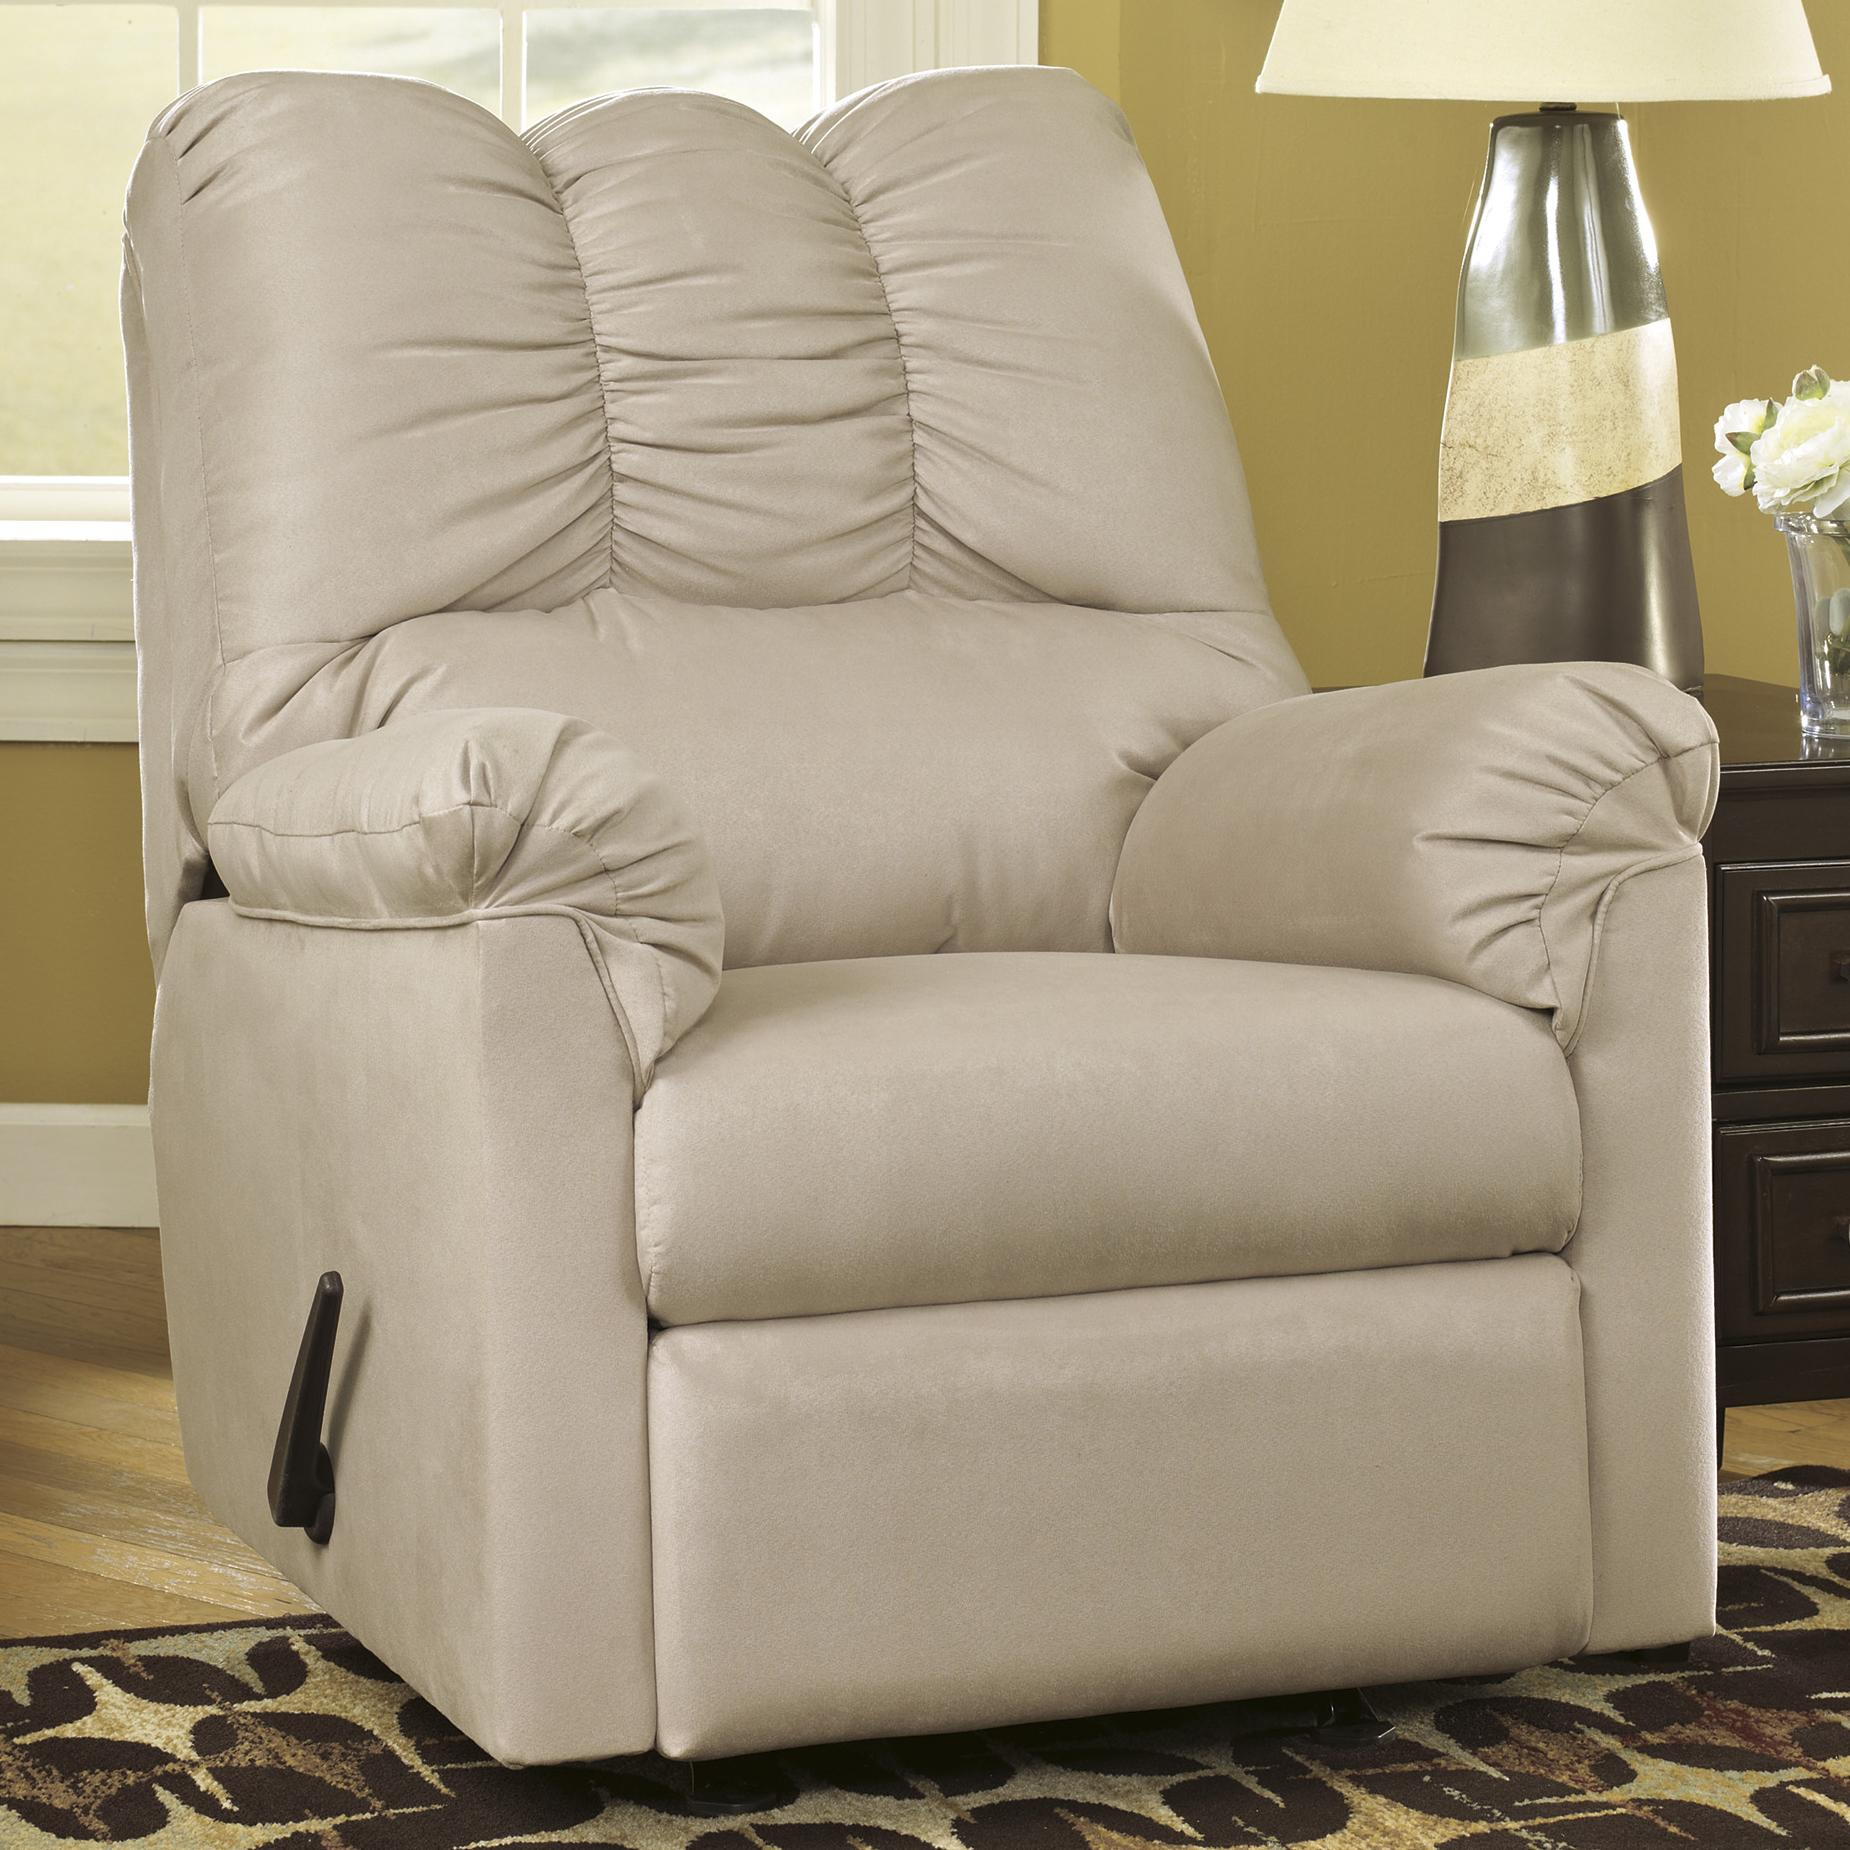 Darcy - Stone Rocker Recliner by Ashley (Signature Design) at Johnny Janosik